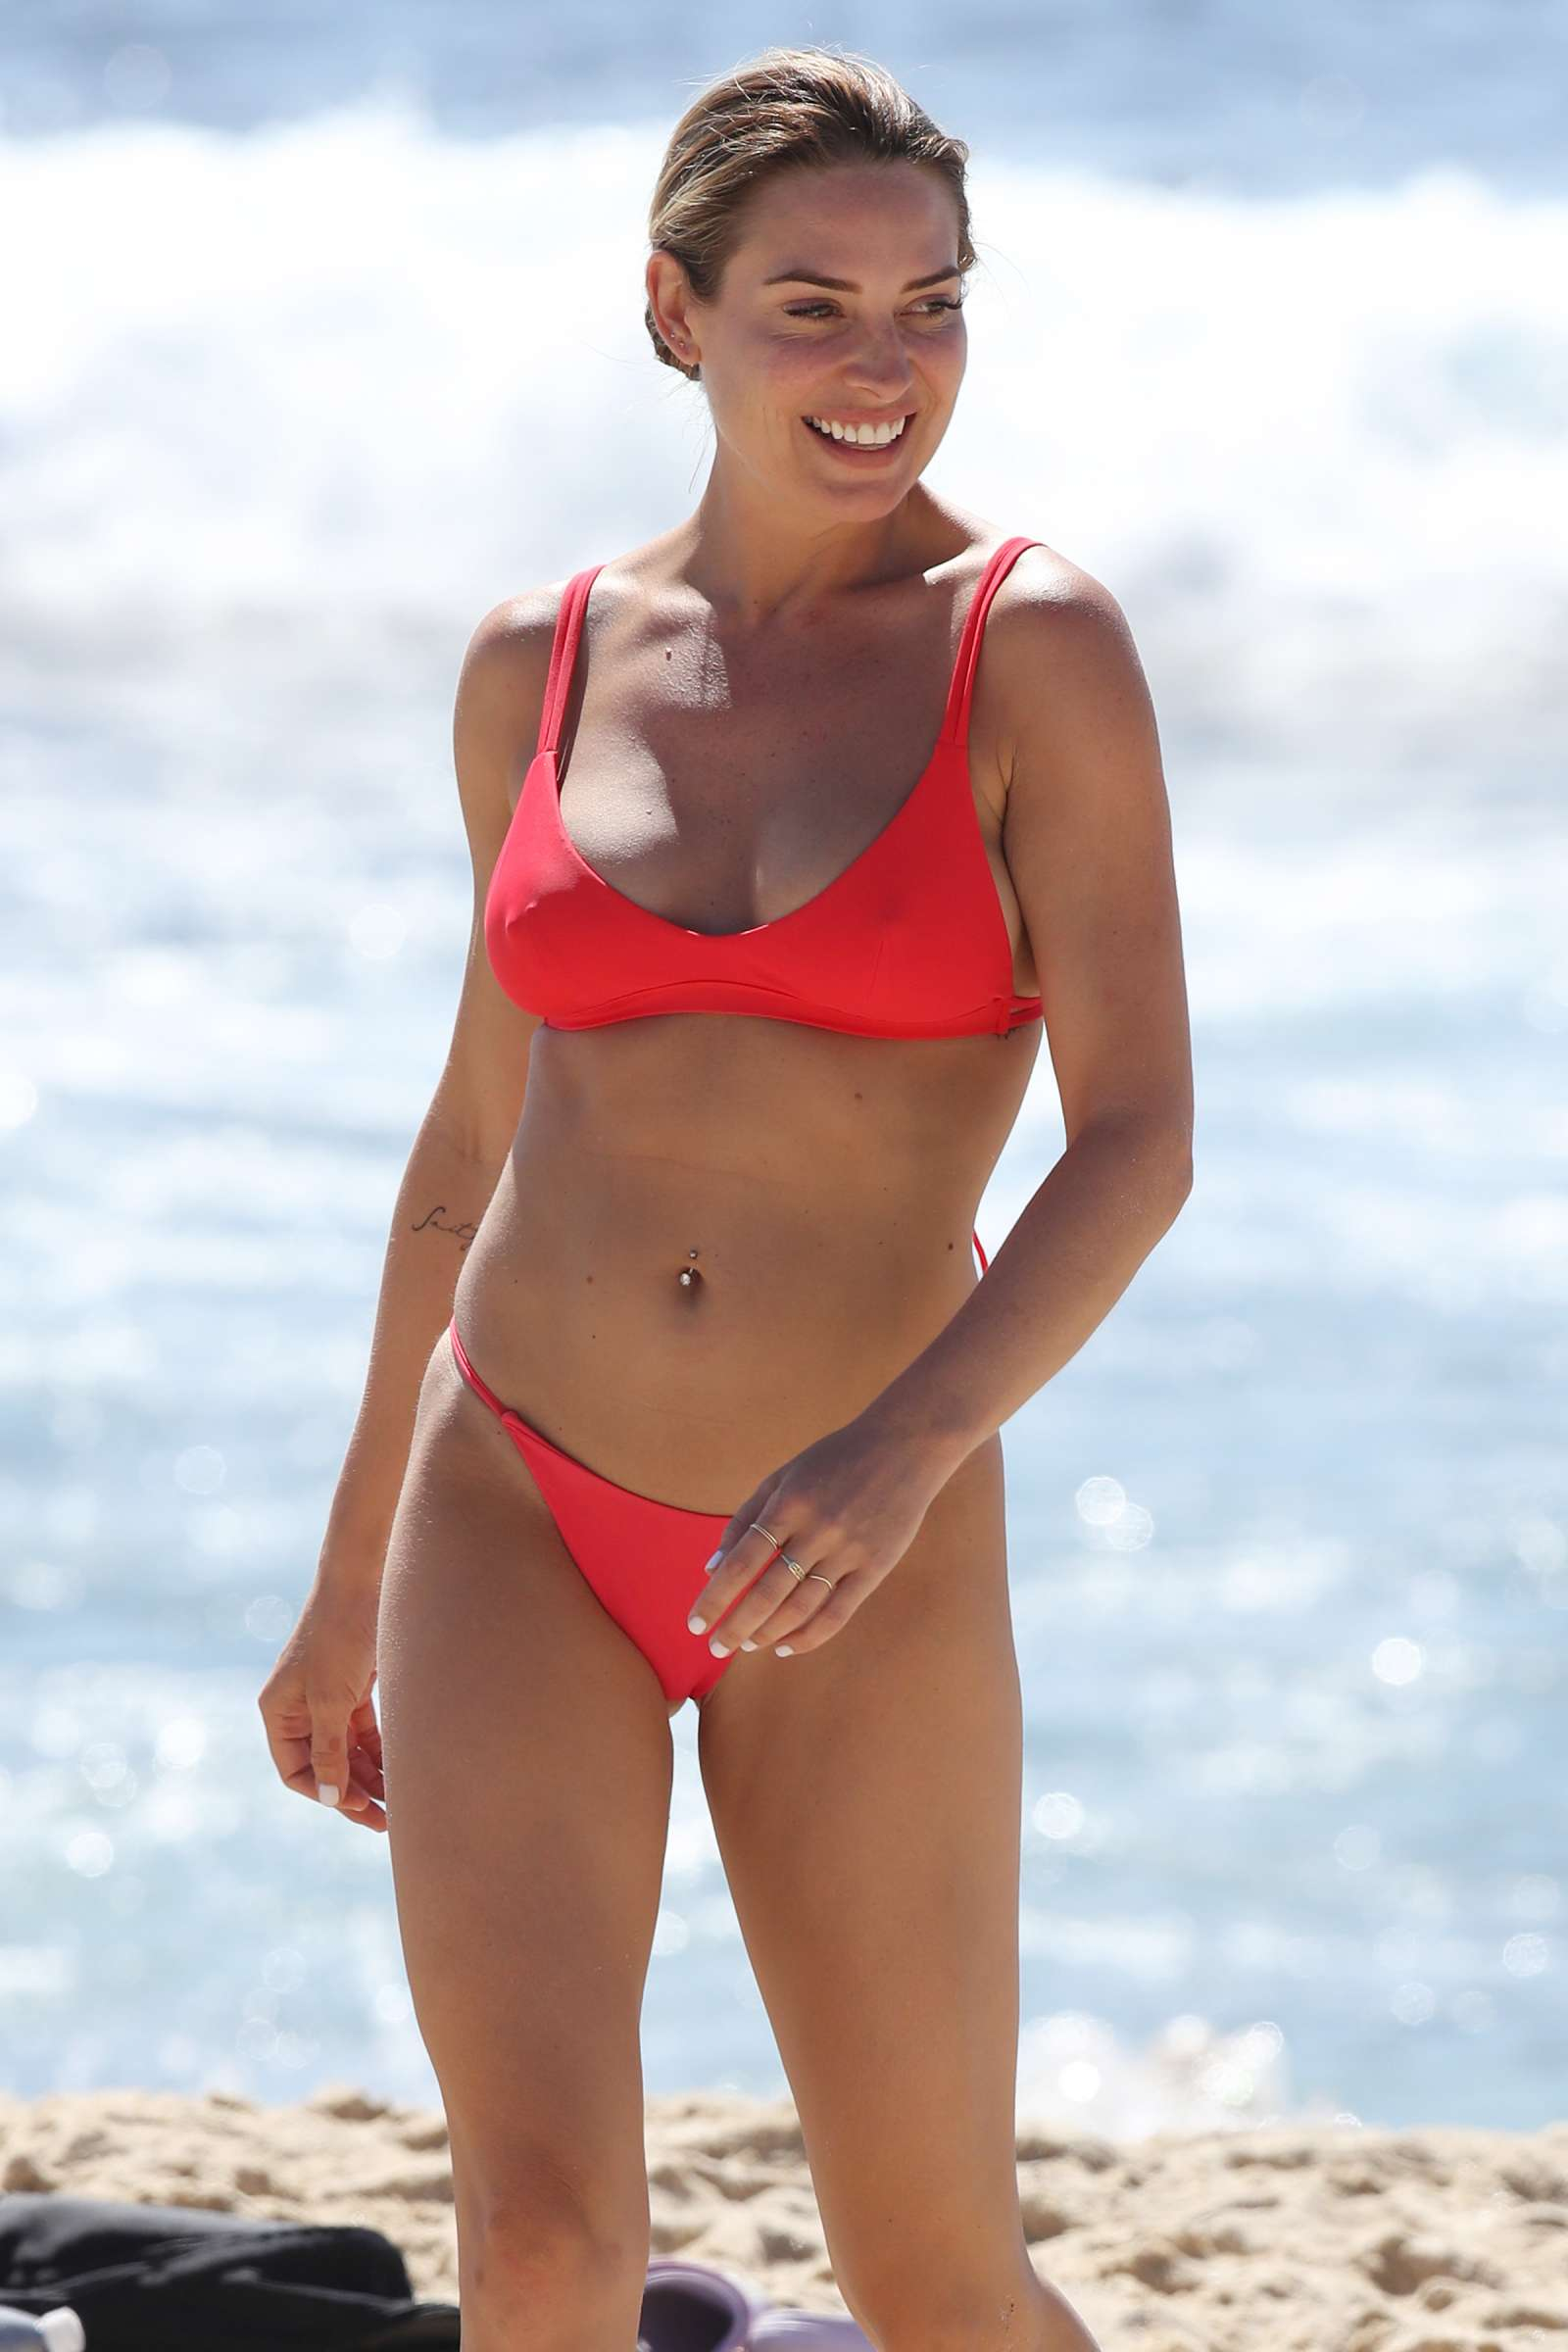 Lisa Clark in Red Bikini on the beach in Sydney